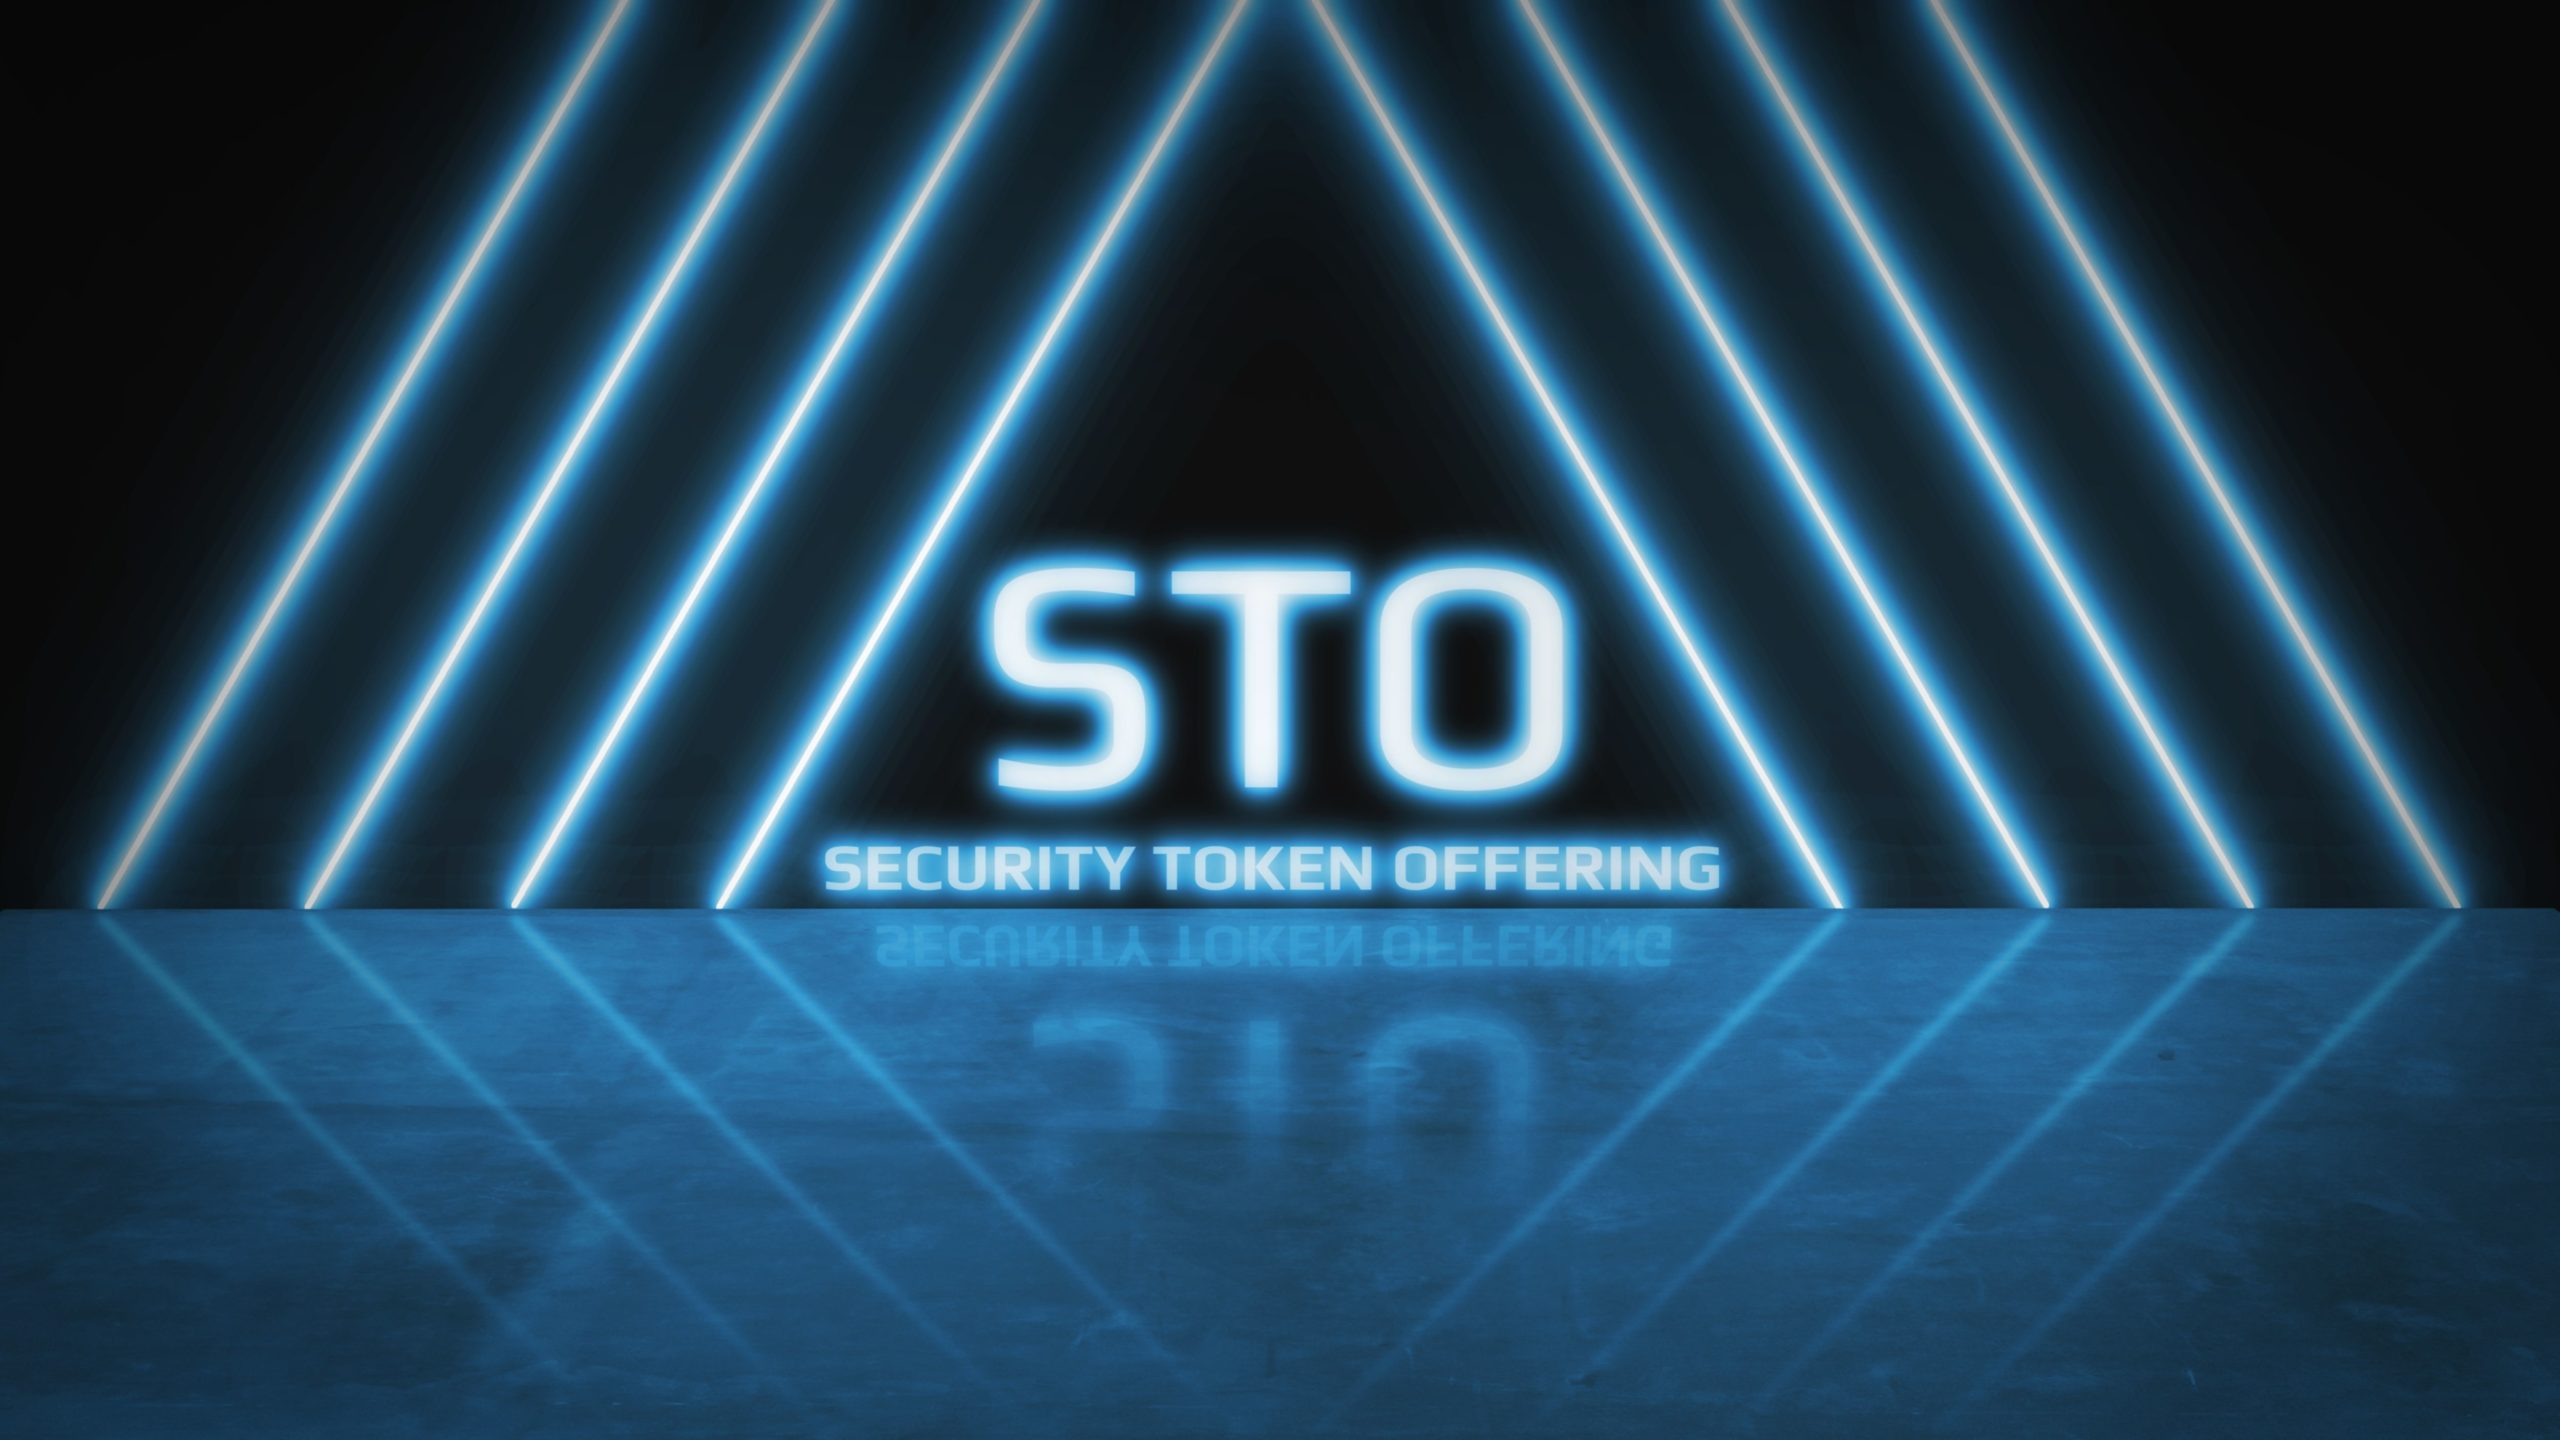 Security Token Offering หรือ STO